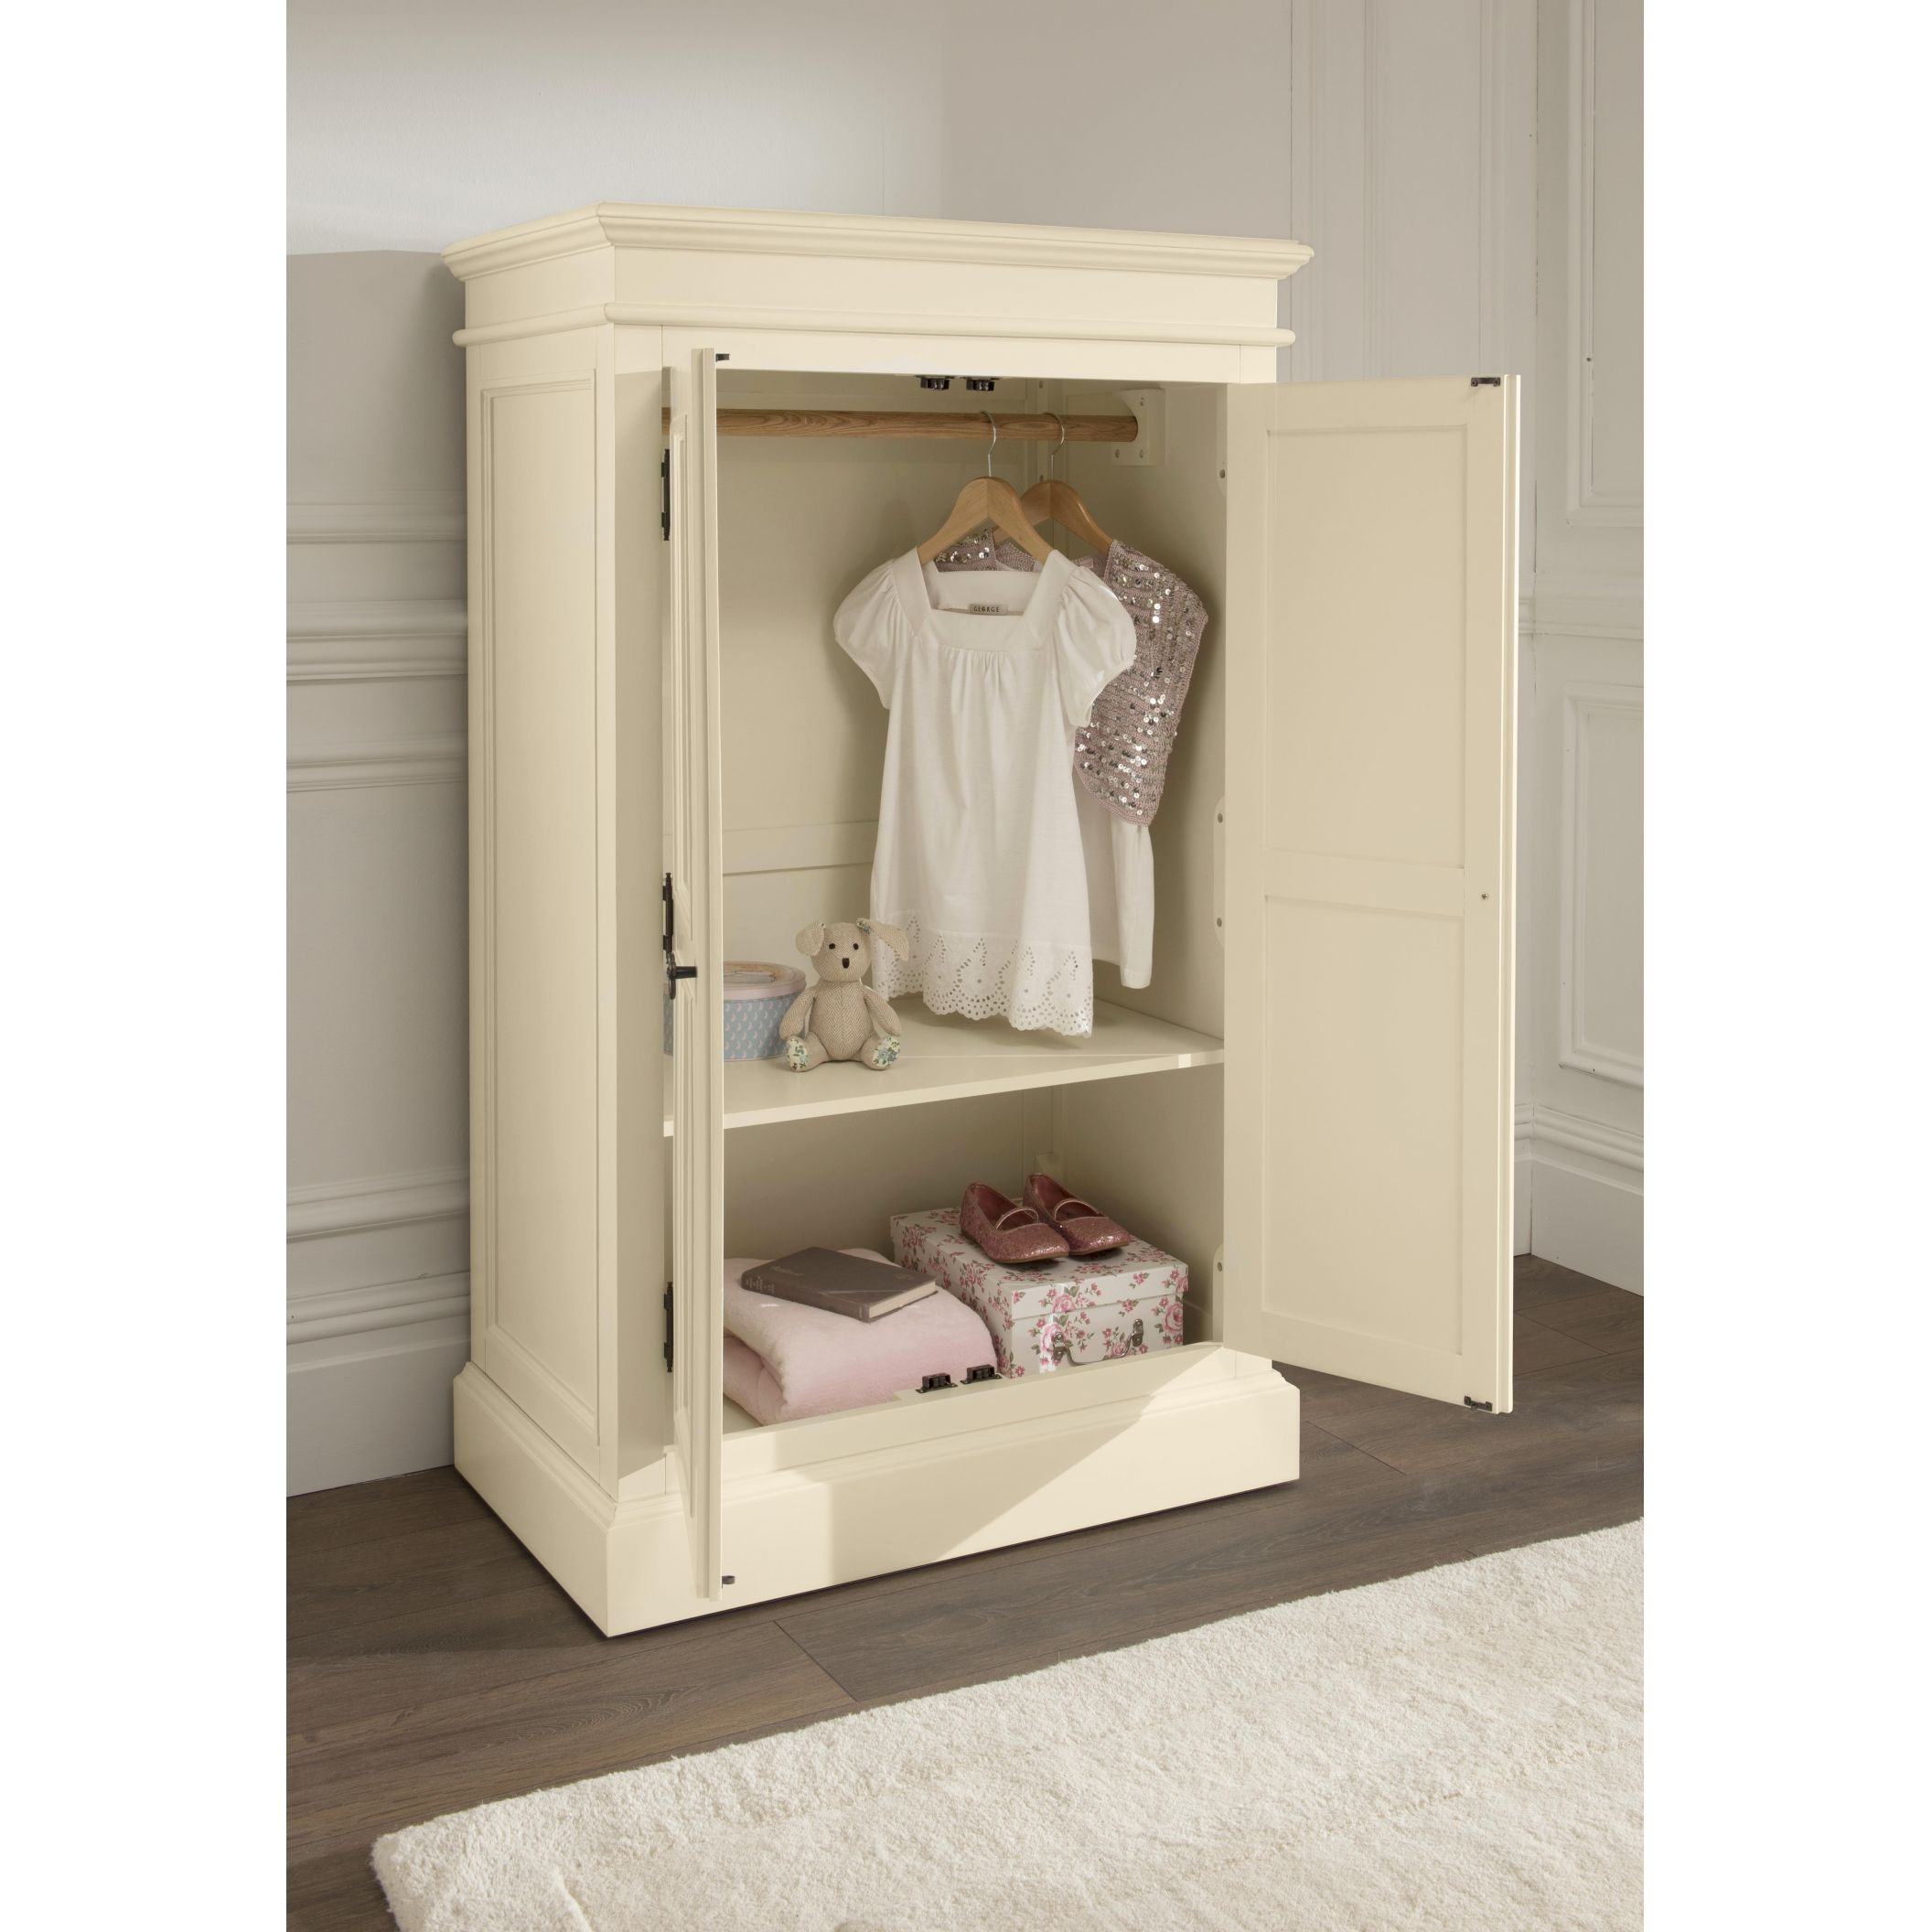 Small Wardrobes for a Smart Collection of Clothes and Perfumes